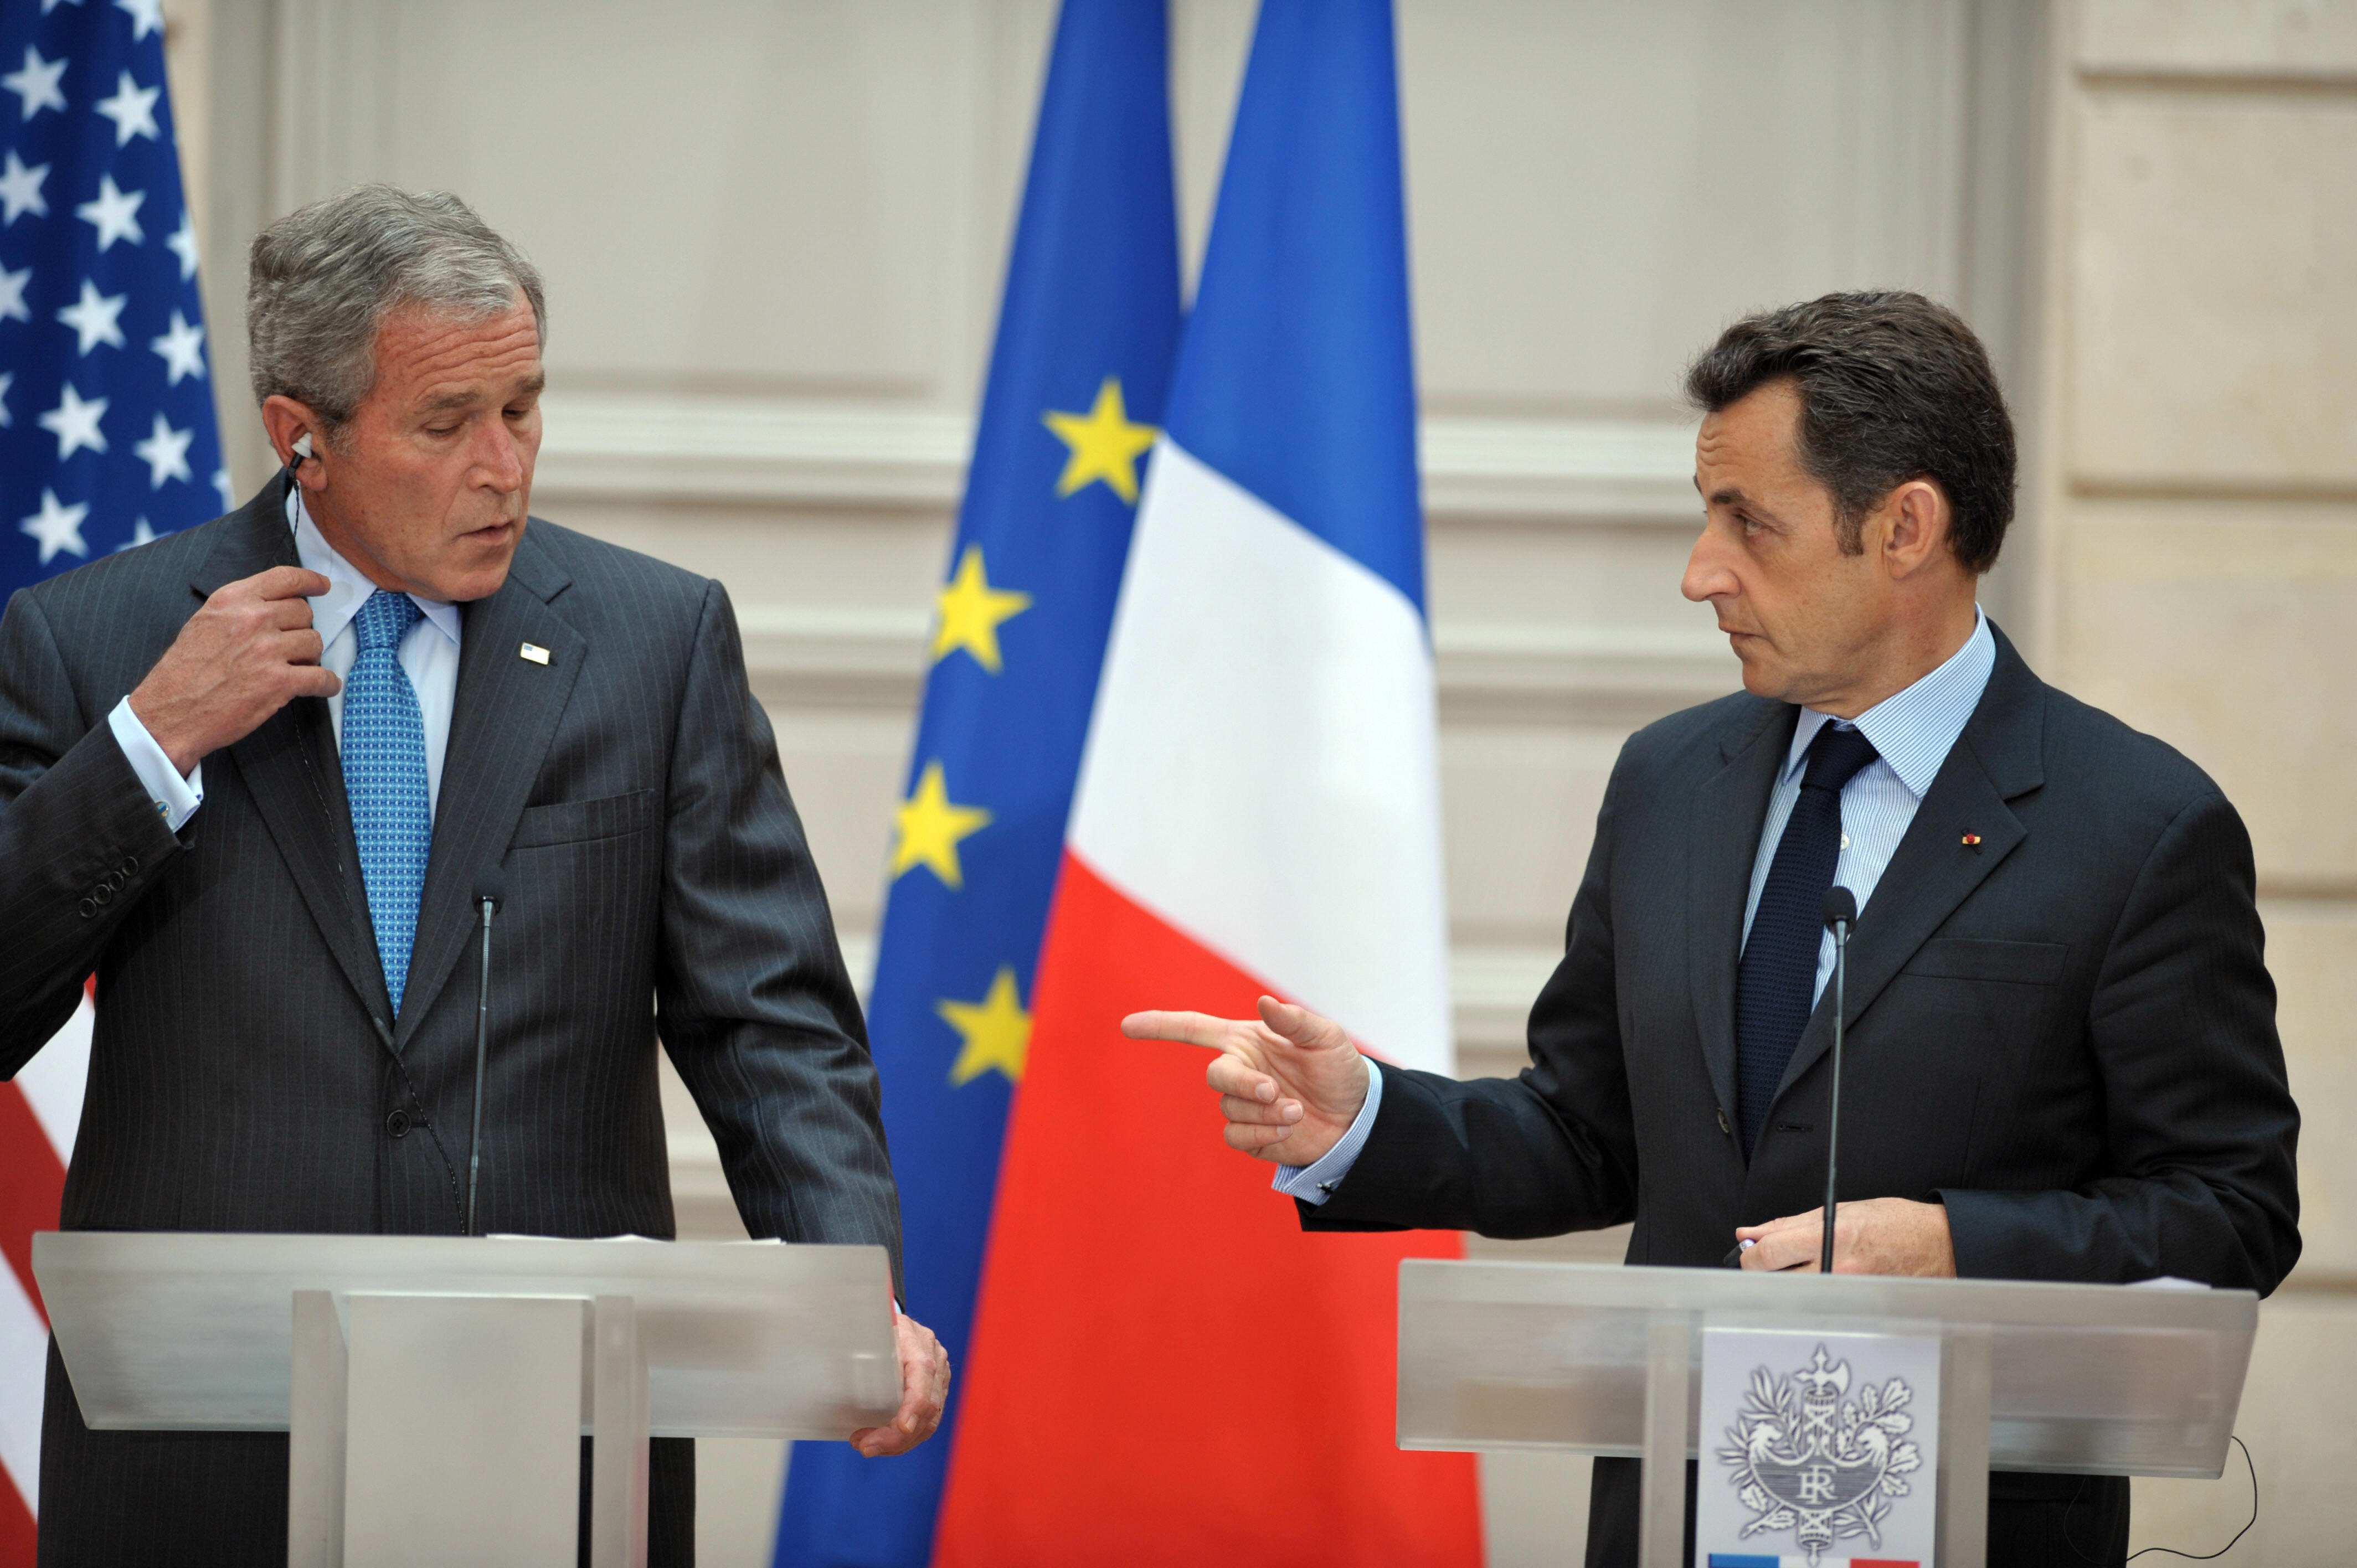 Bush attends a joint press conference with his French counterpart Nicolas Sarkozy at the presidential Elysee Palace in Paris.